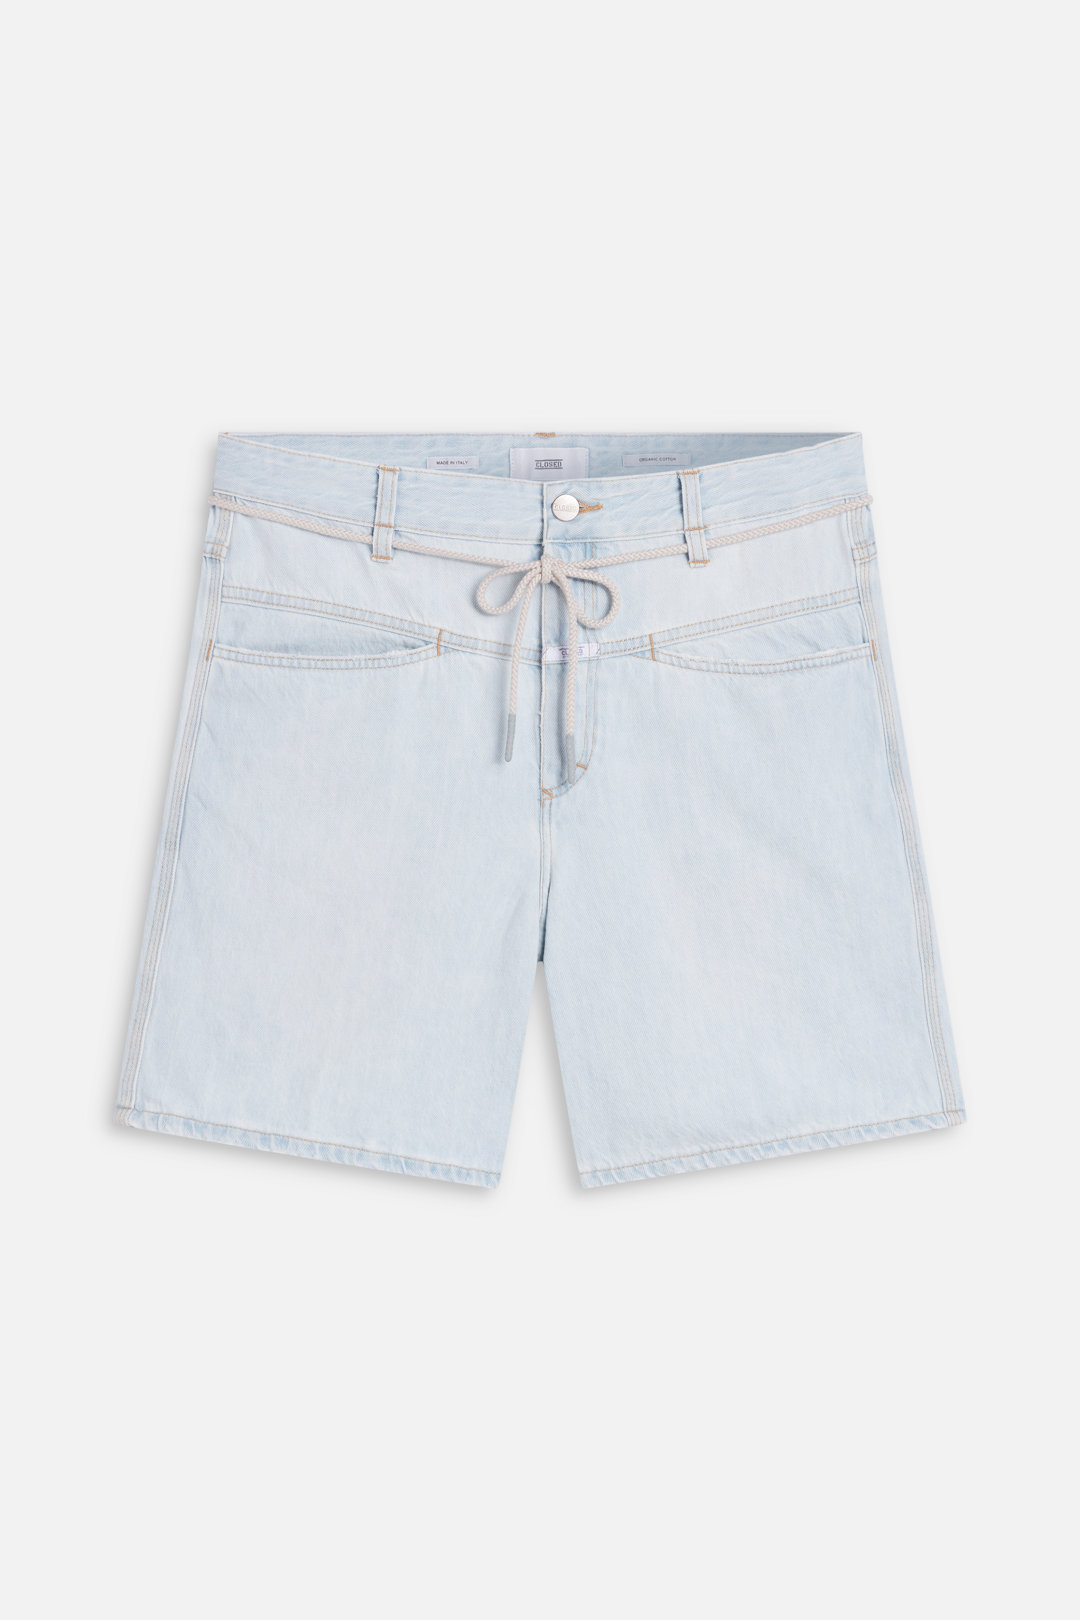 Closed, Shorts, Denim, Jeansshorts, Summer 2021